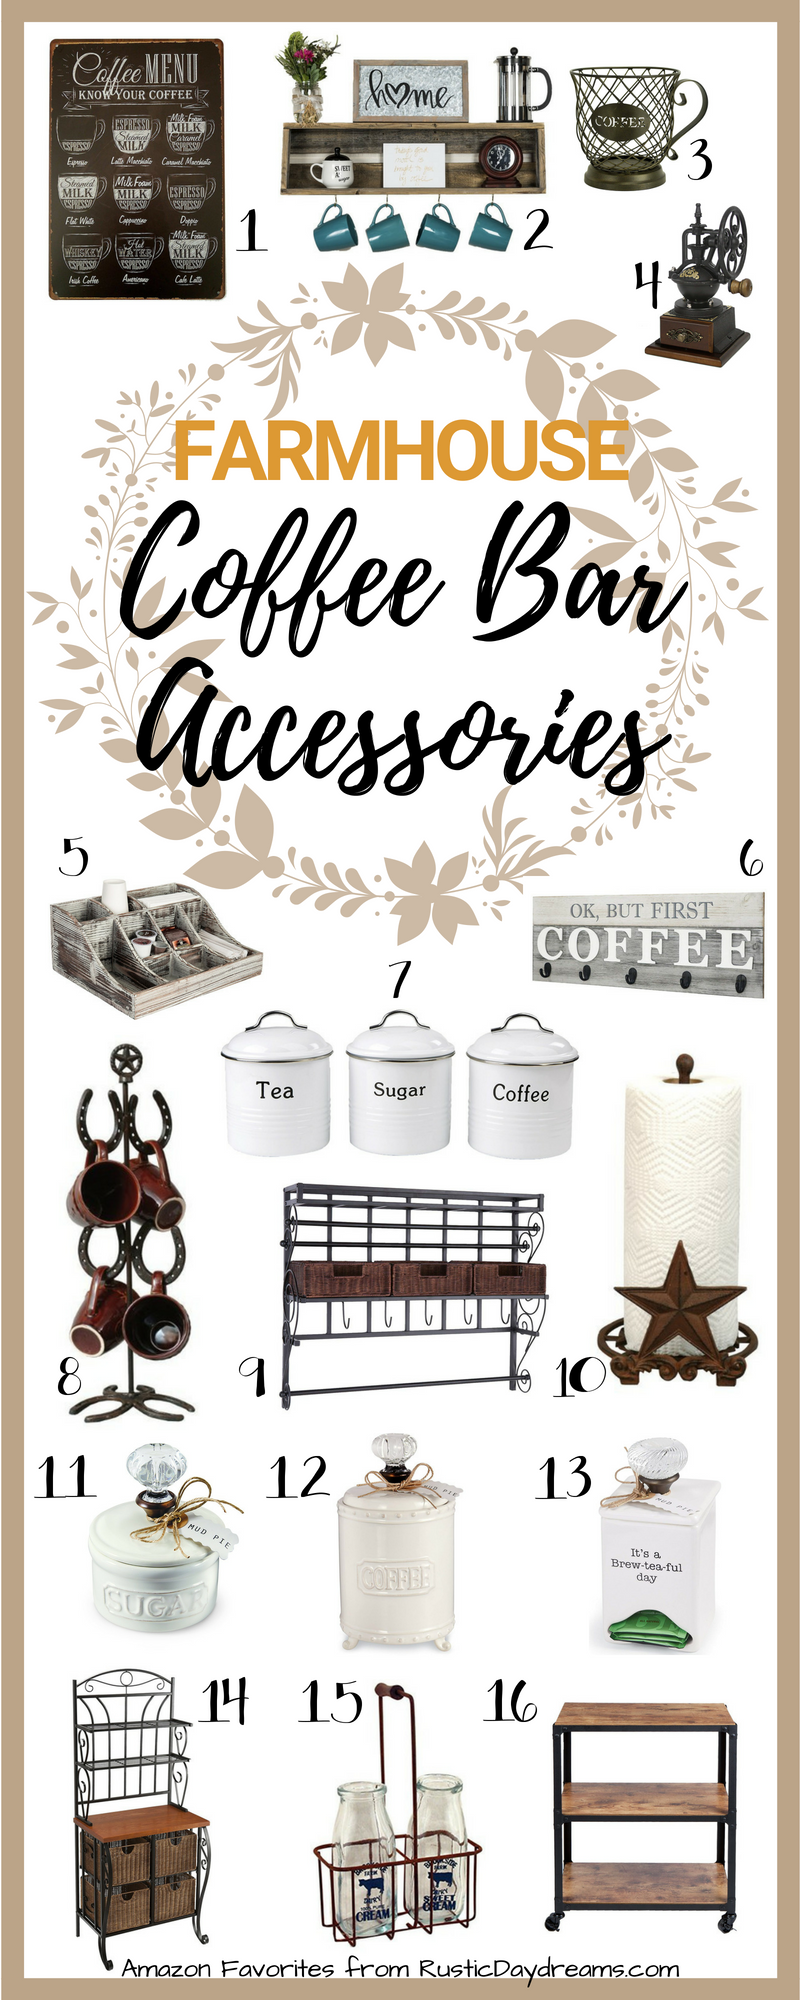 RusticDaydreams.com Amazon Coffee Bar Accessories